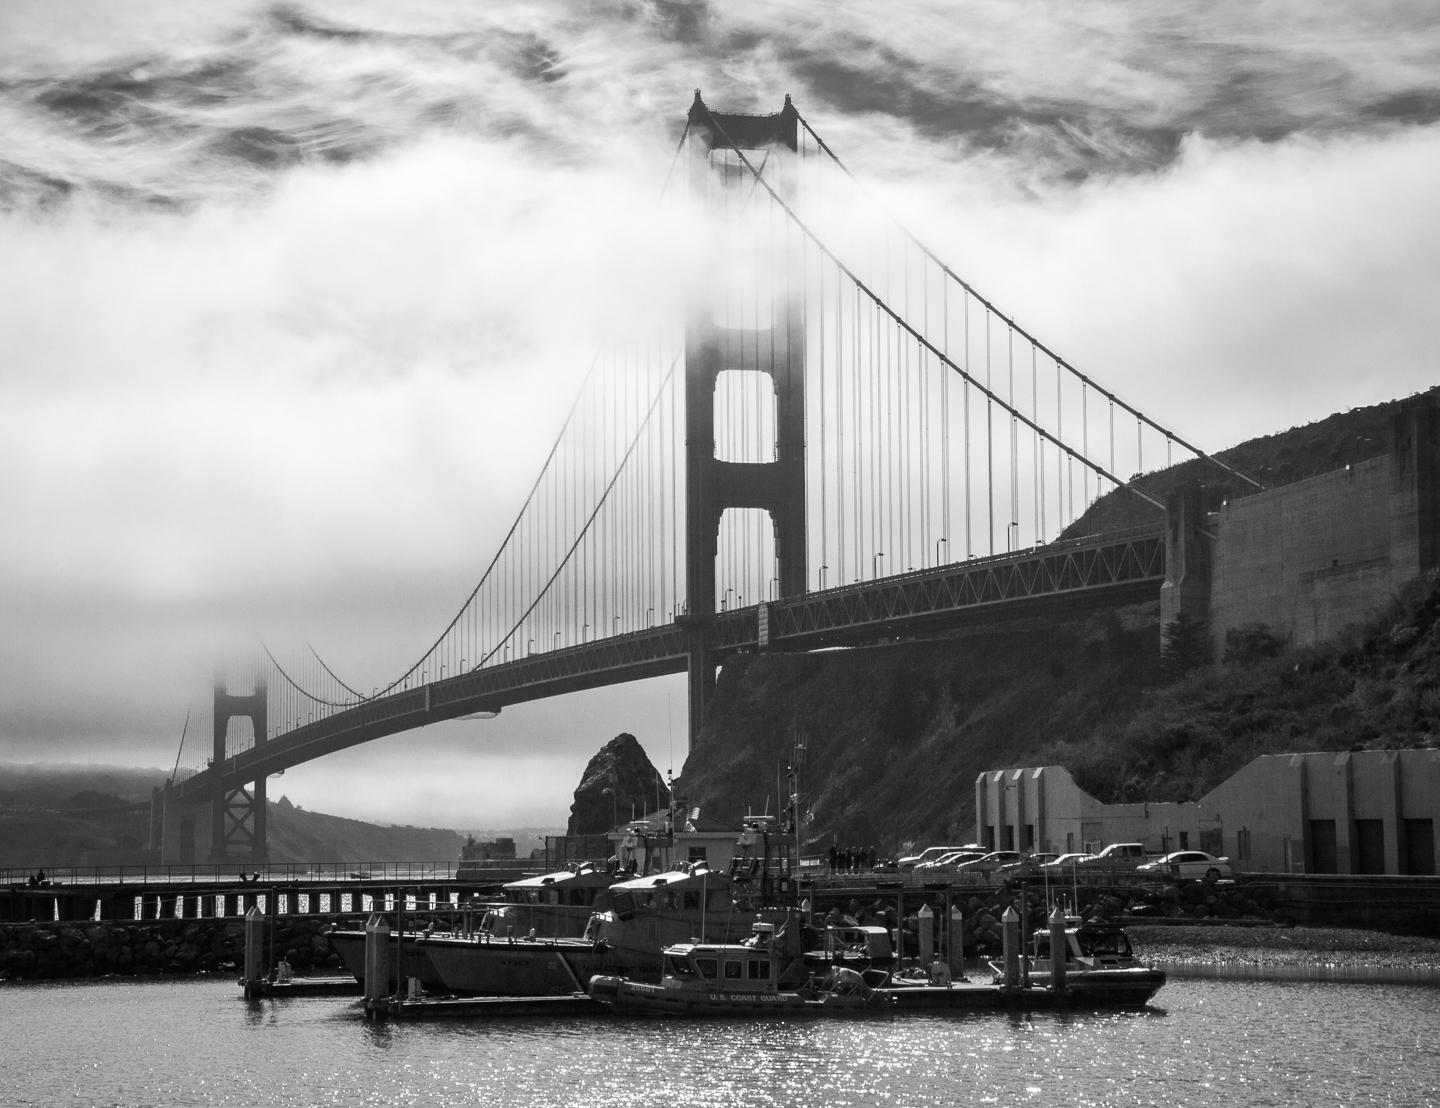 Golden Gate B-W, by Bill Lane. All rights reserved by Bill Lane.